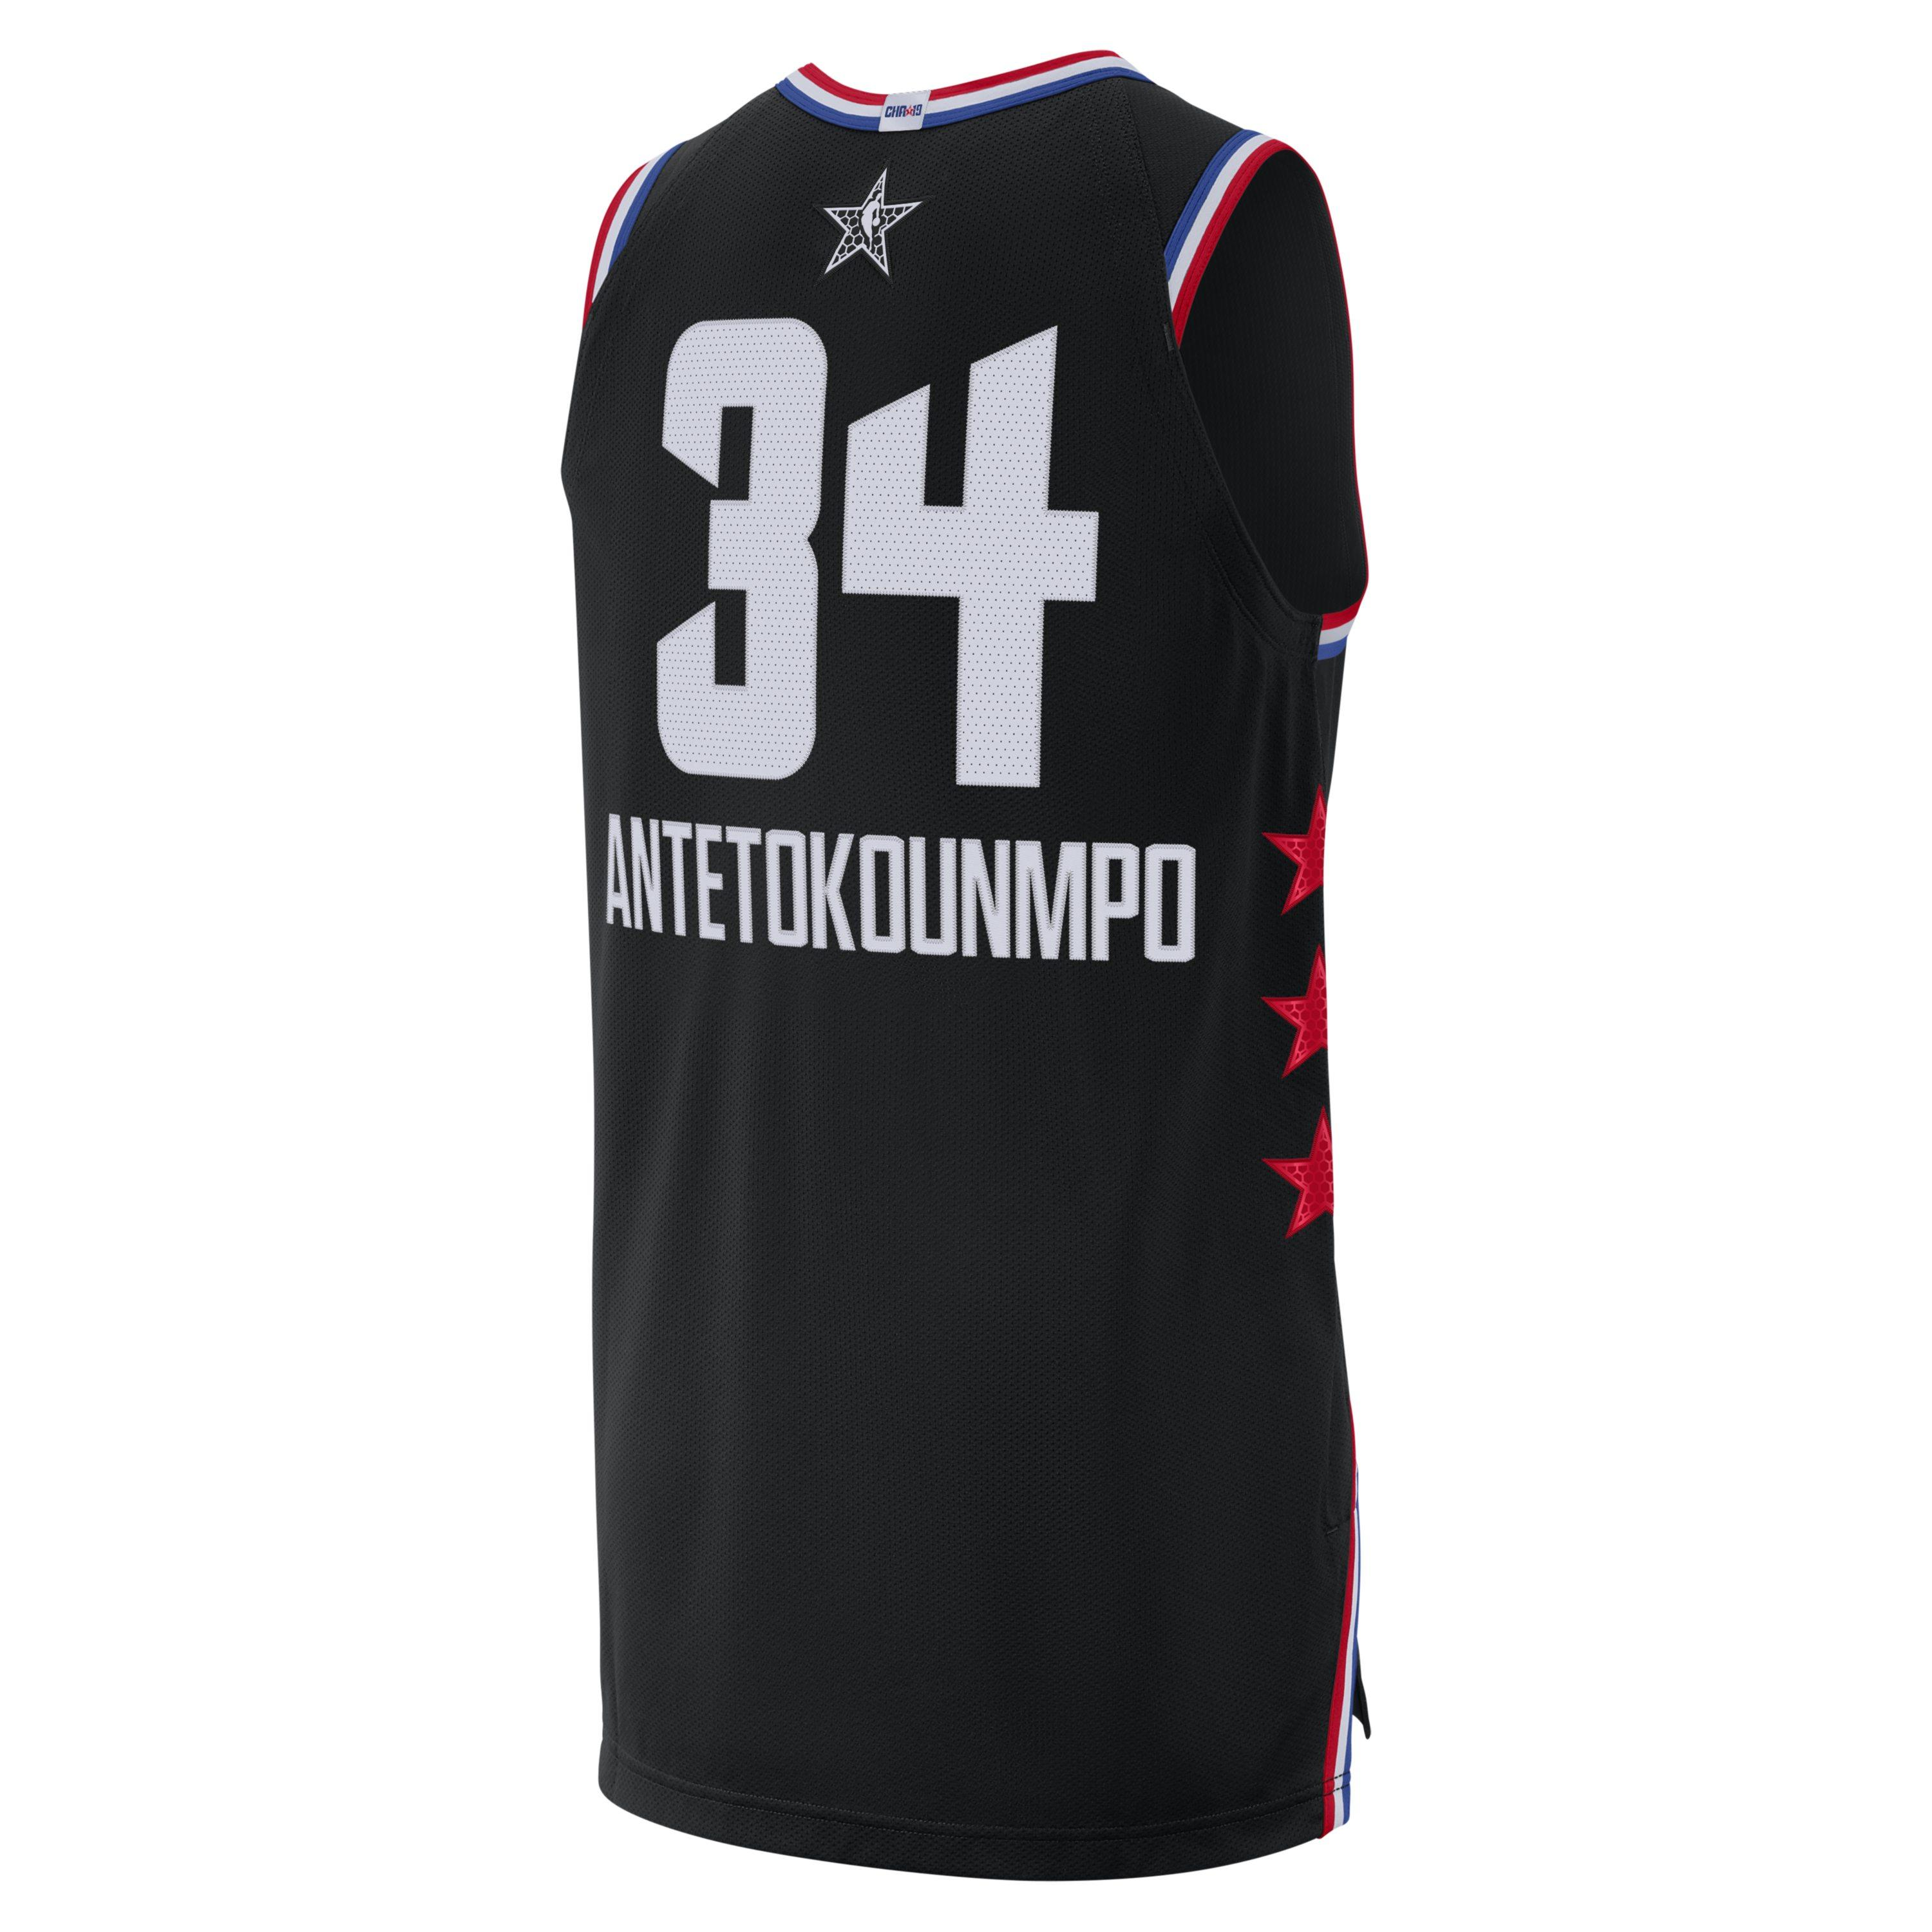 2953dab982fc38 Nike - Black Giannis Antetokounmpo All-star Edition Authentic Jordan Nba  Connected Jersey for Men. View fullscreen